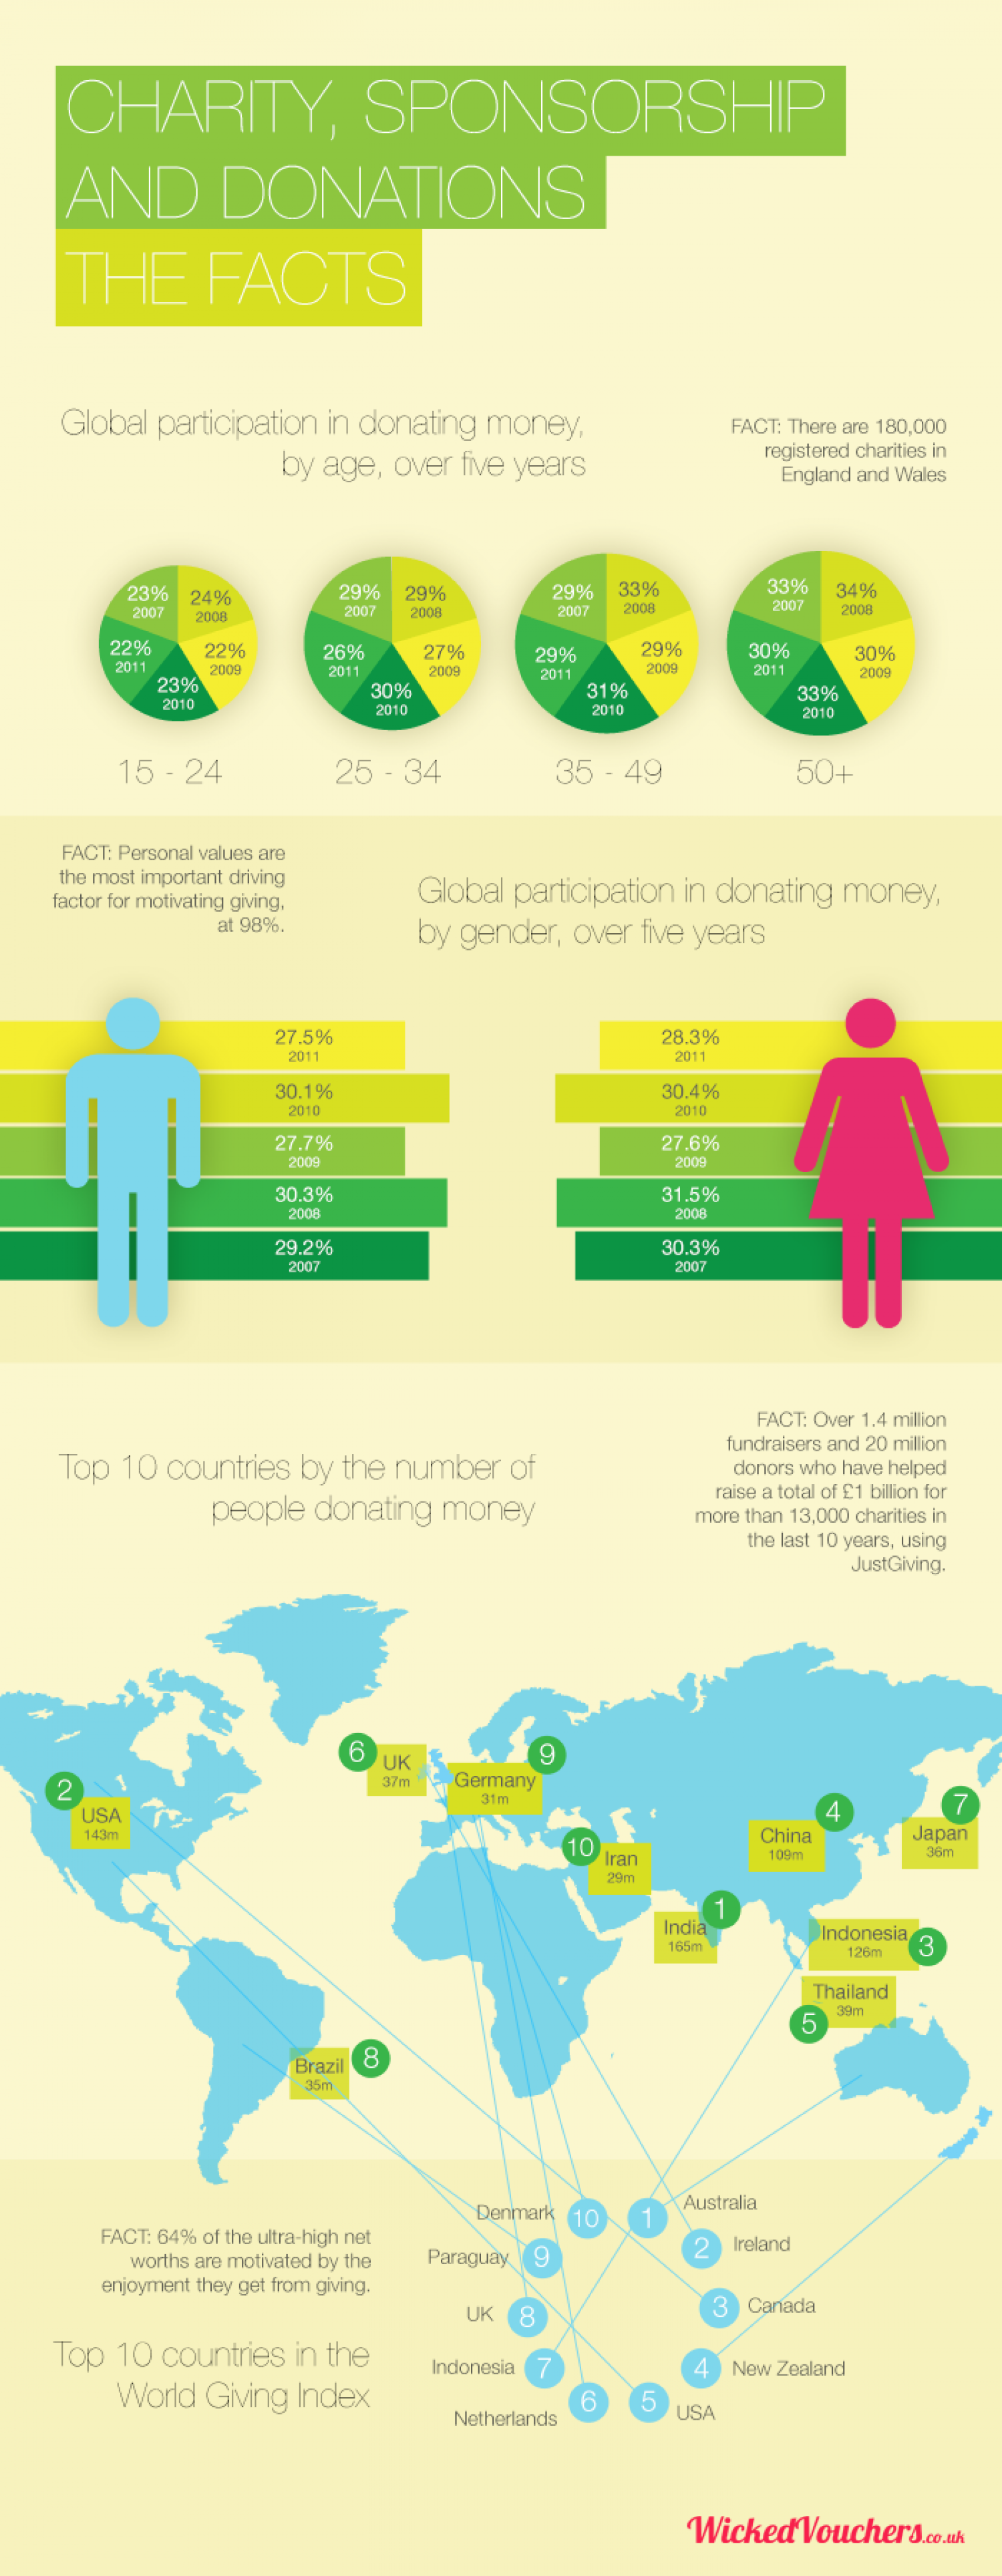 Charity, Sponsorship And Donations – THE FACTS Infographic